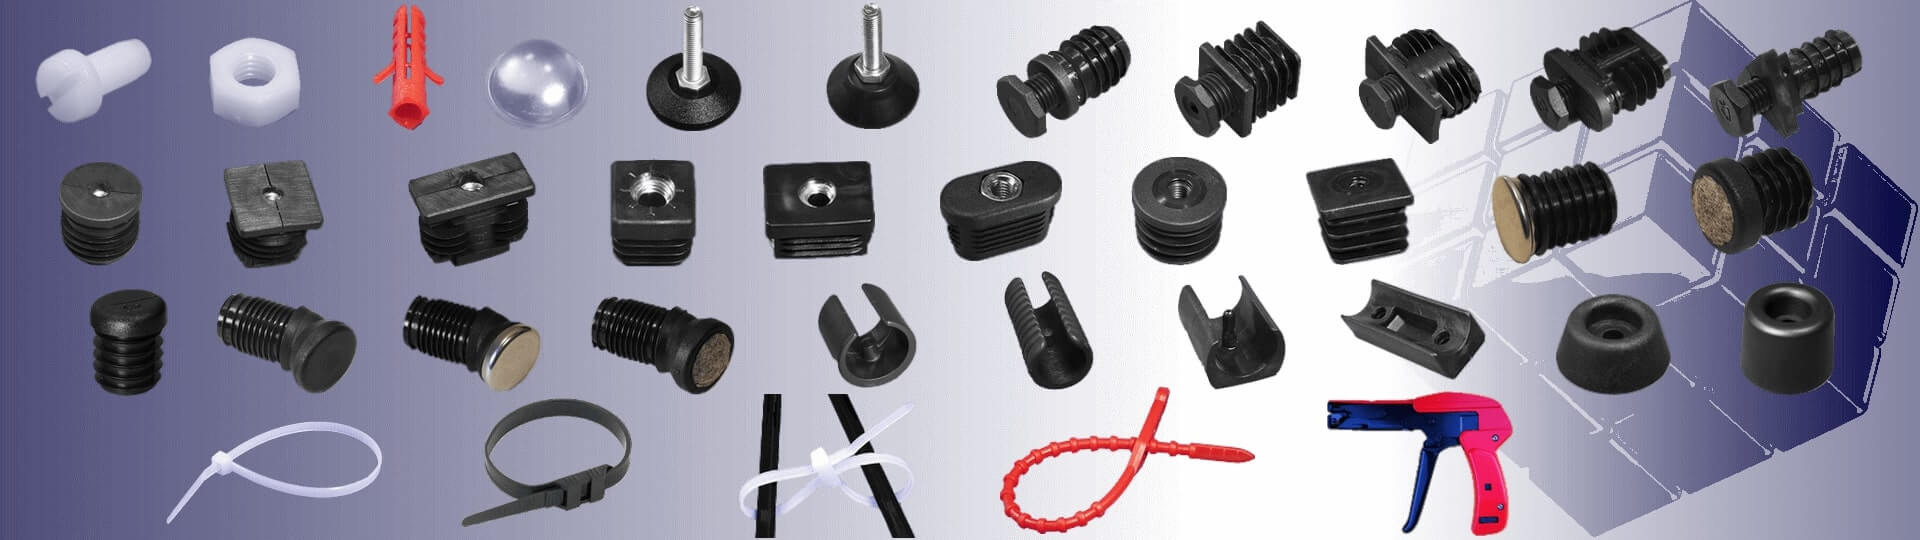 Connectors, screws, bumpers, feet, sliders, cable ties, dowels.